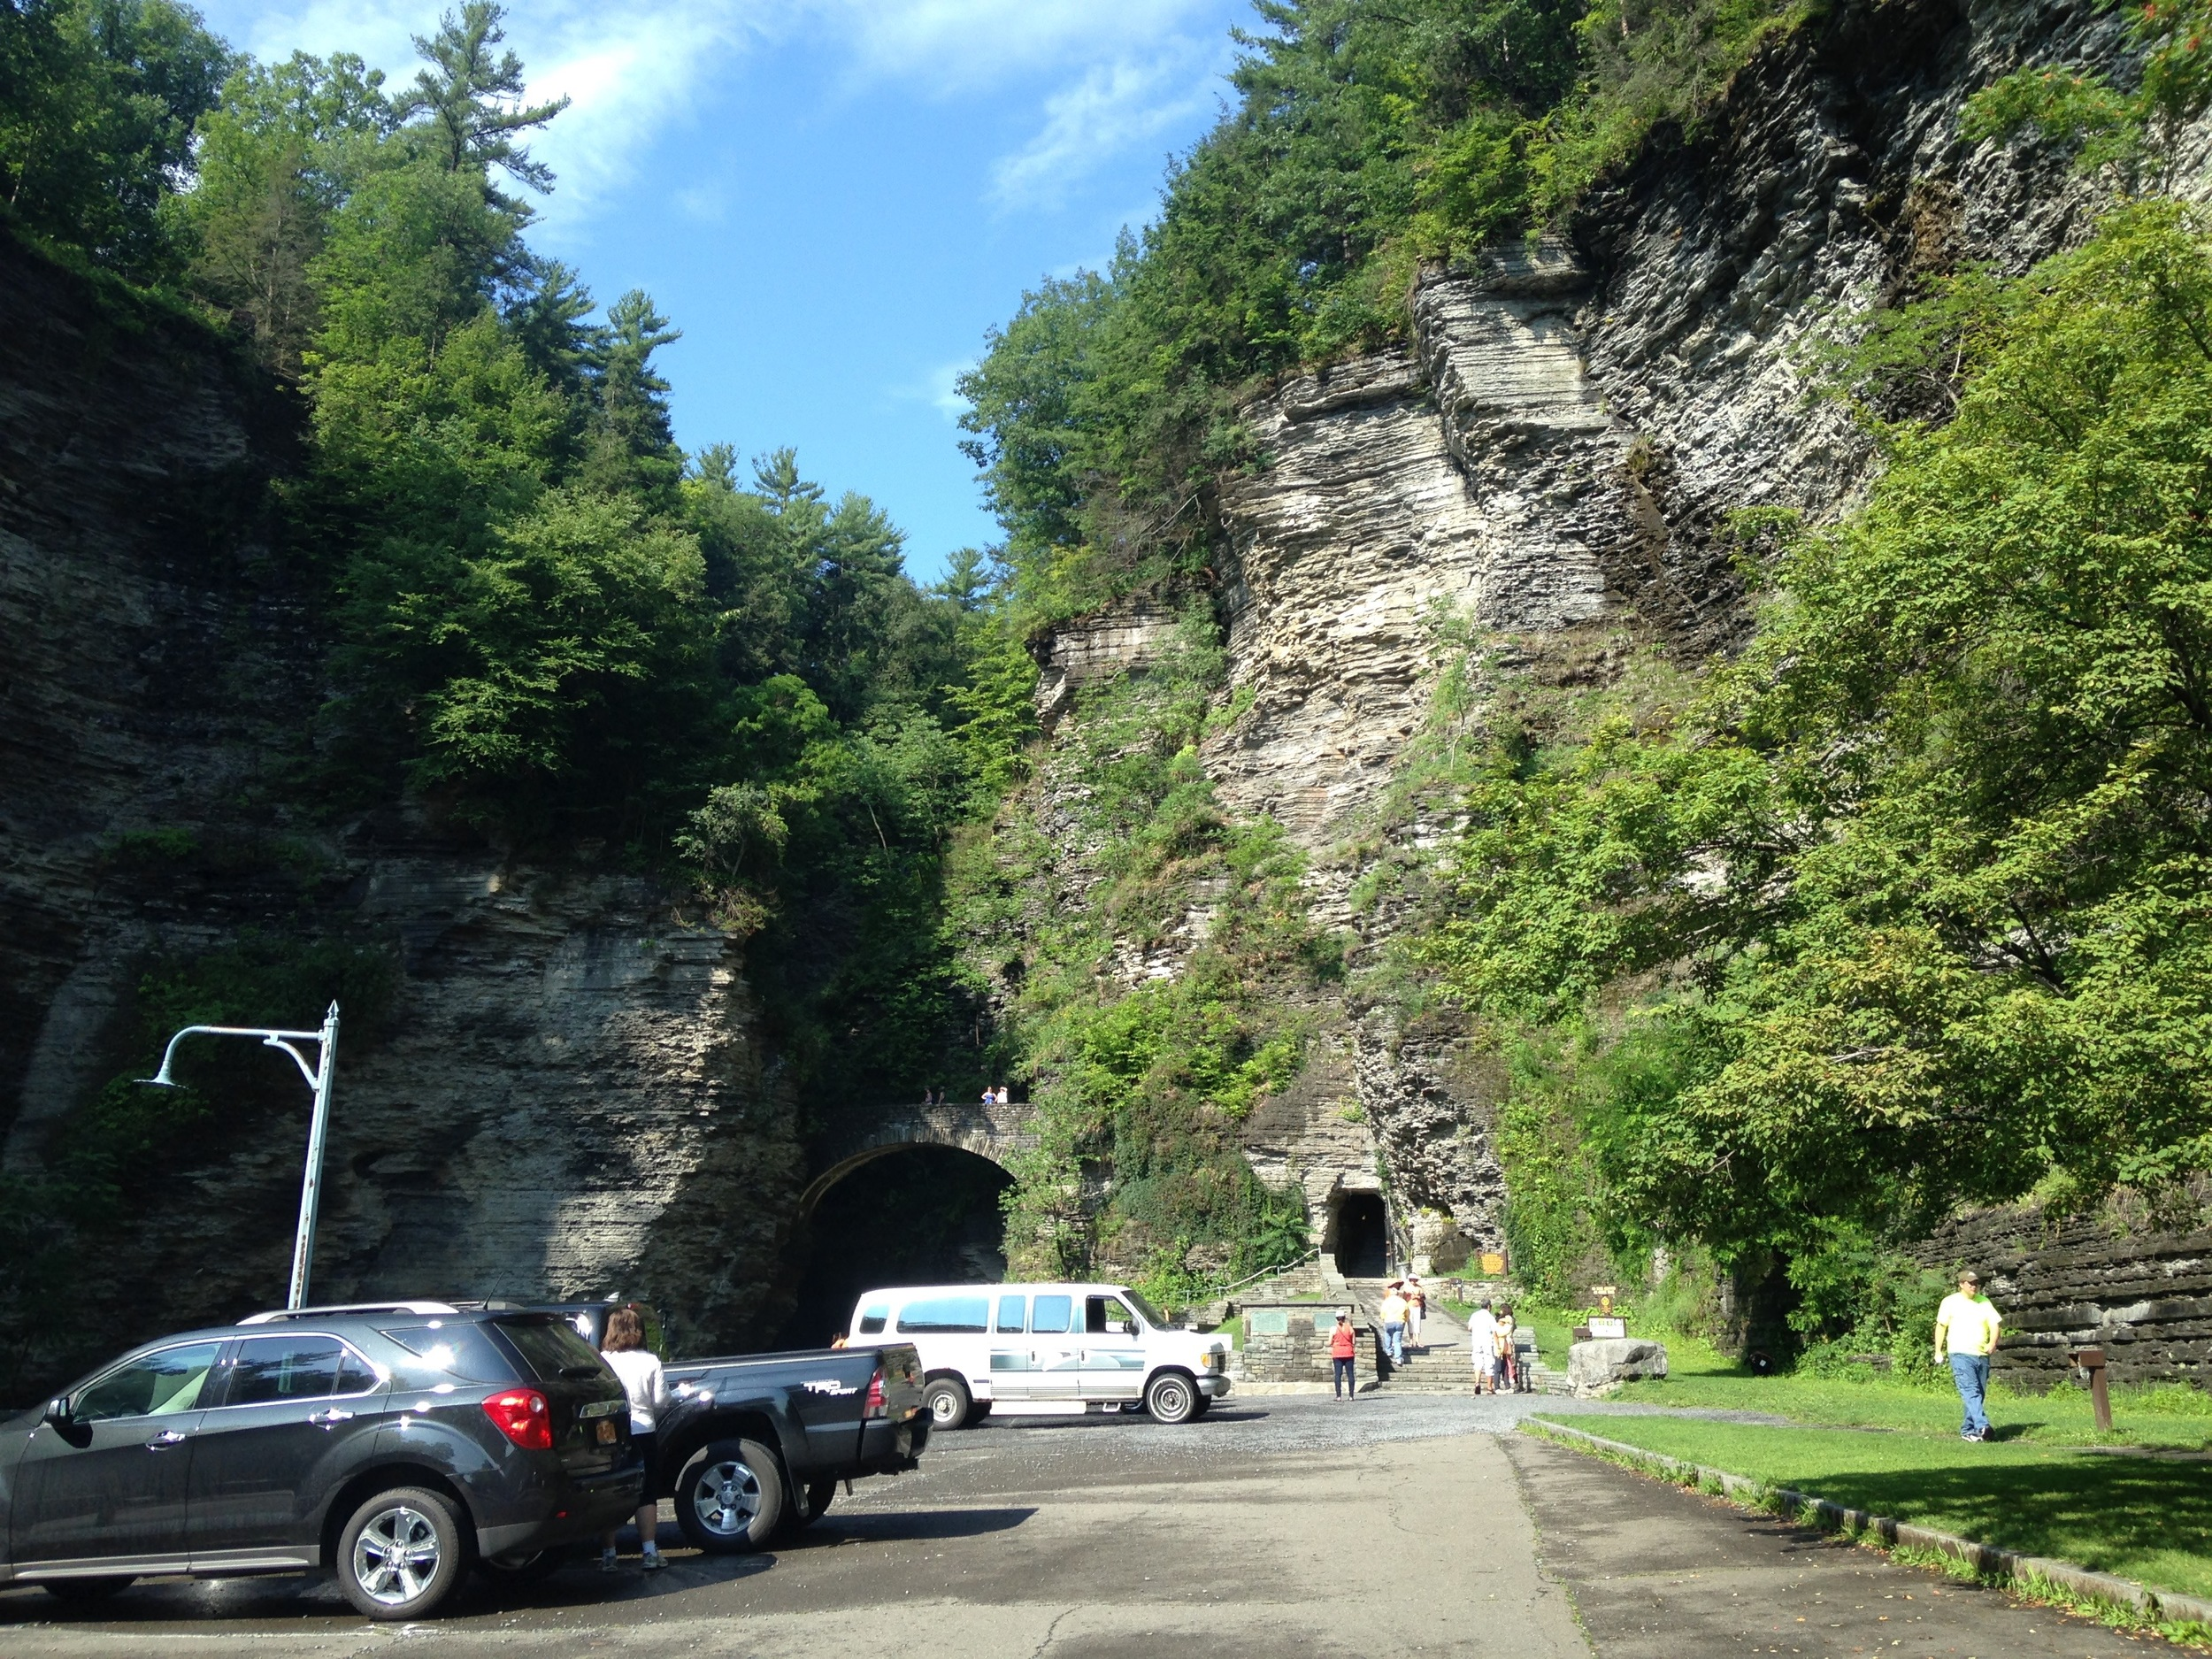 A view of the entrance to Watkins Glen!